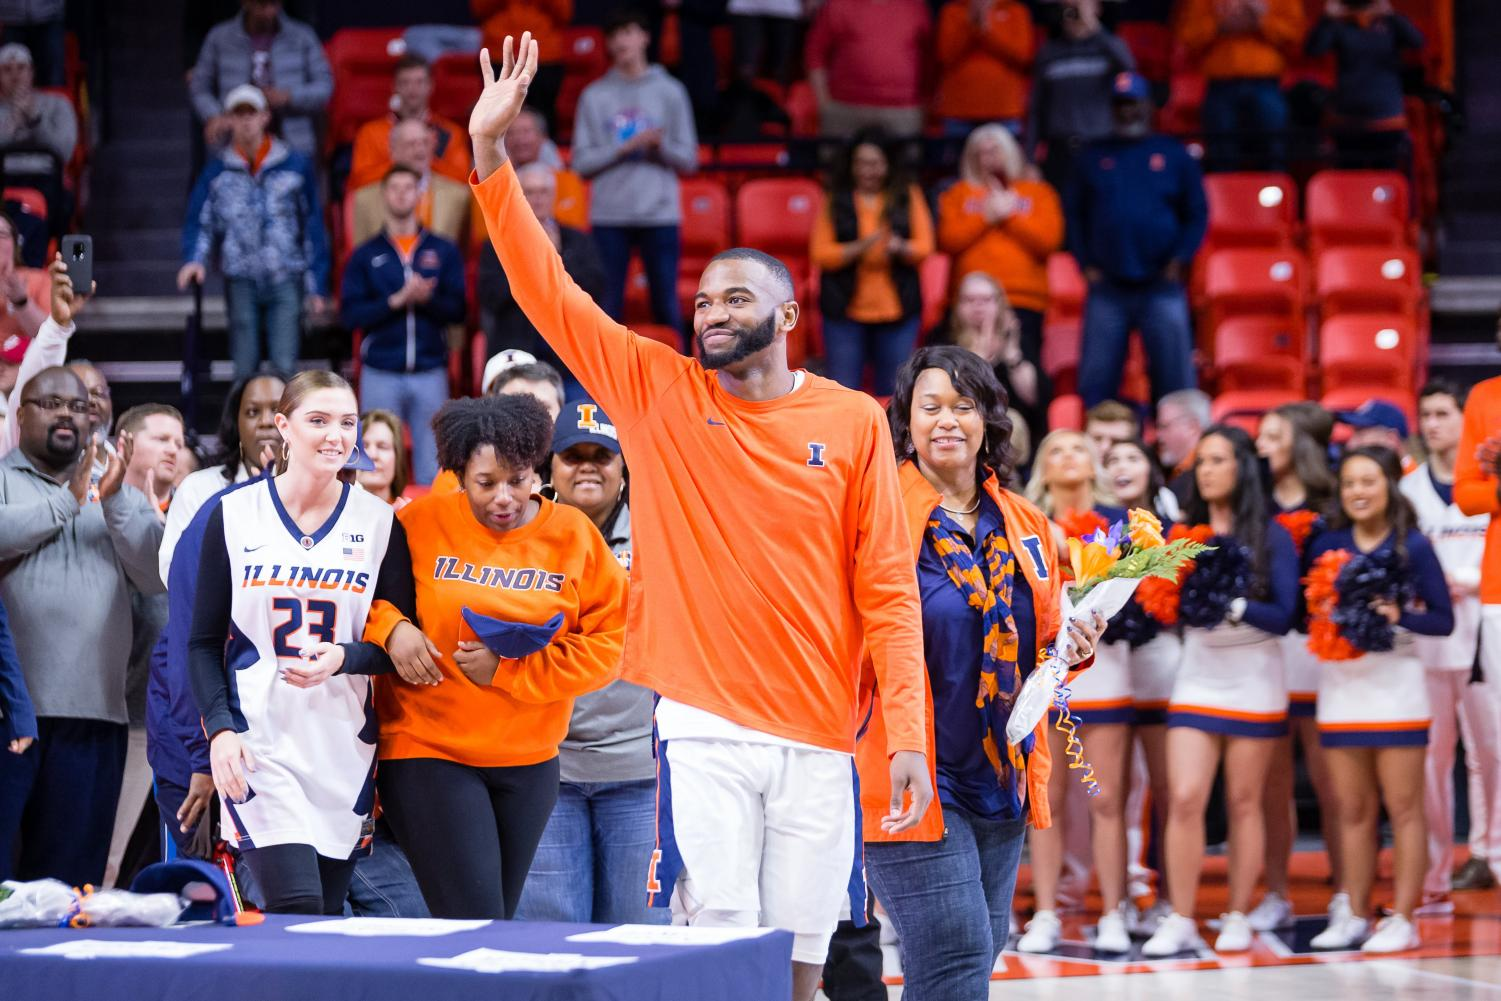 Illinois senior Aaron Jordan waves to the crowd as he is recognized before the game against Indiana at the State Farm Center on Thursday. The Illini lost 92-74.